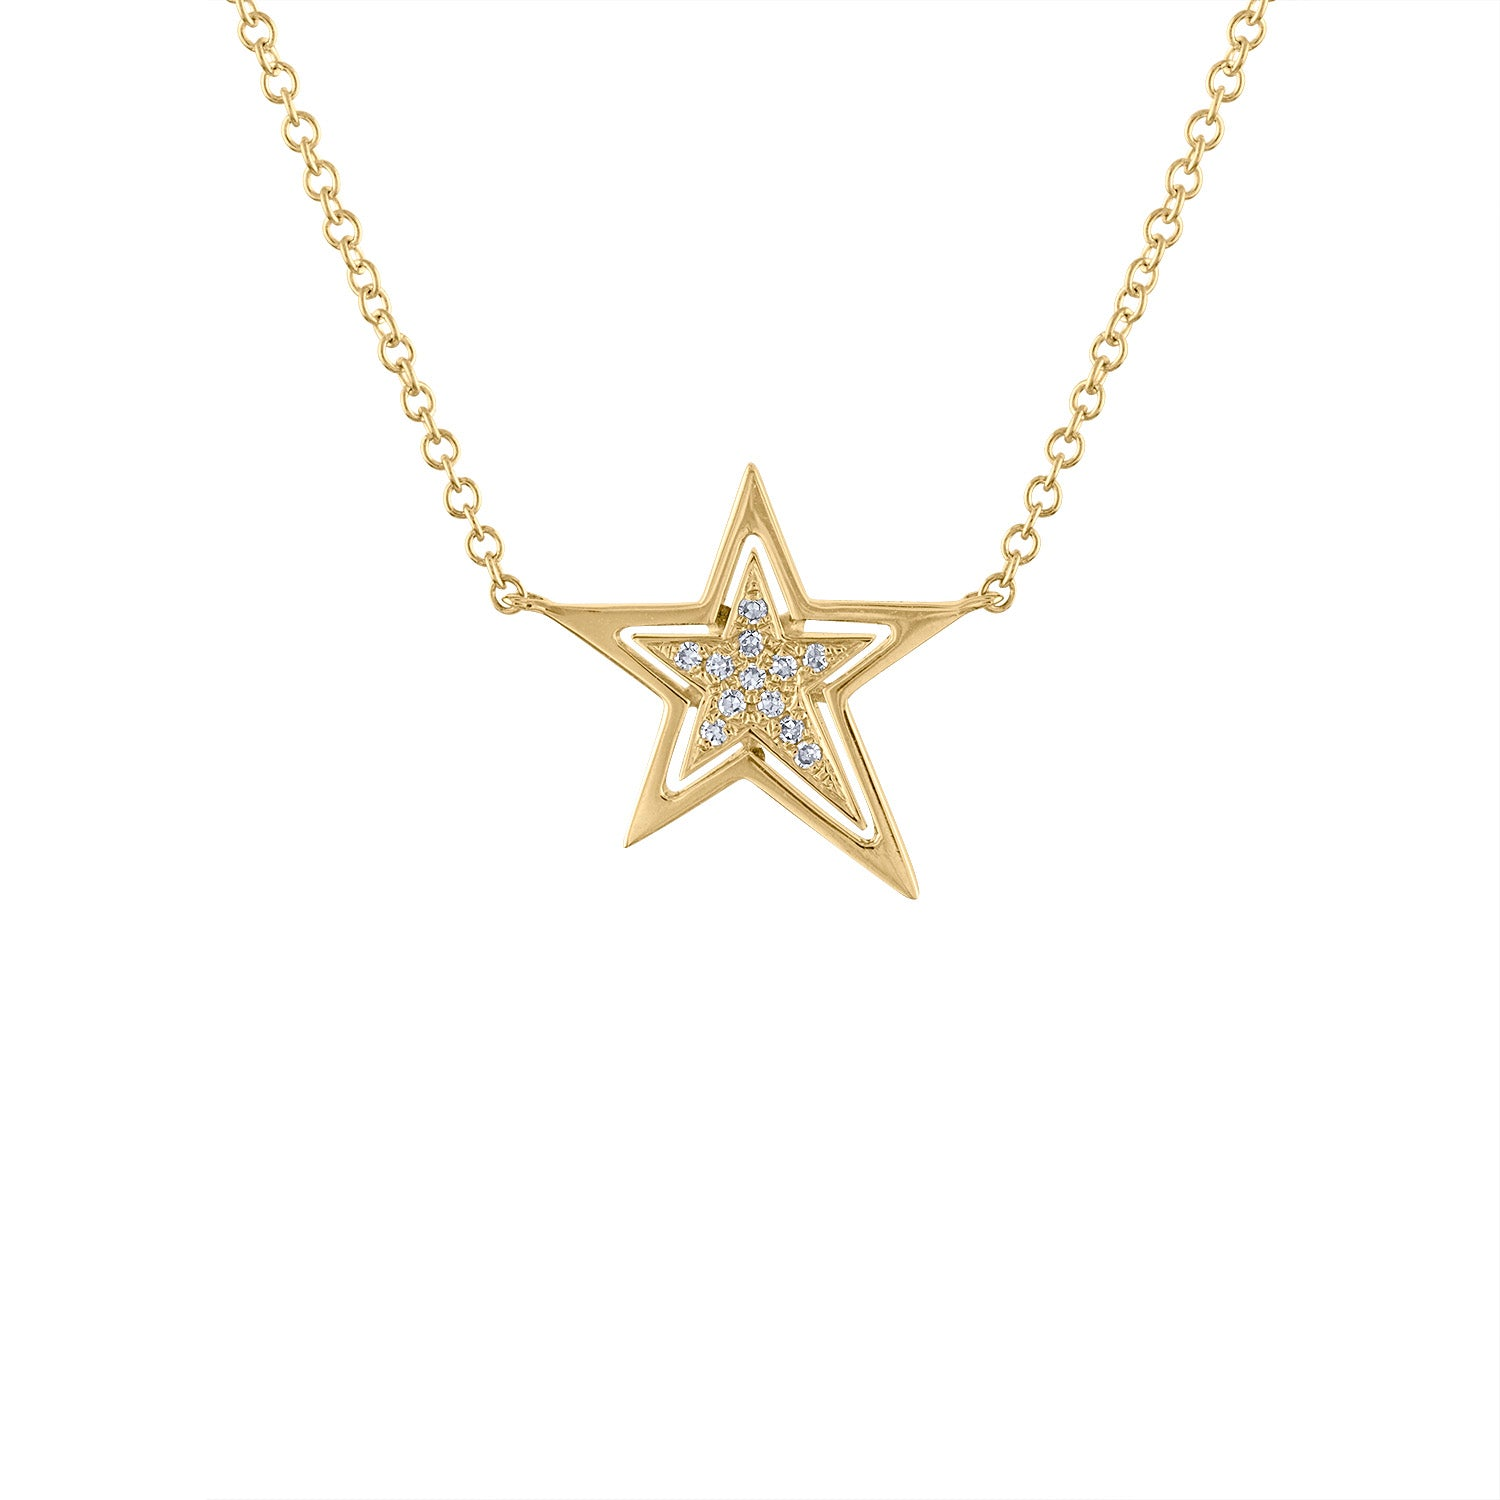 14KT GOLD DIAMOND STAR NECKLACE